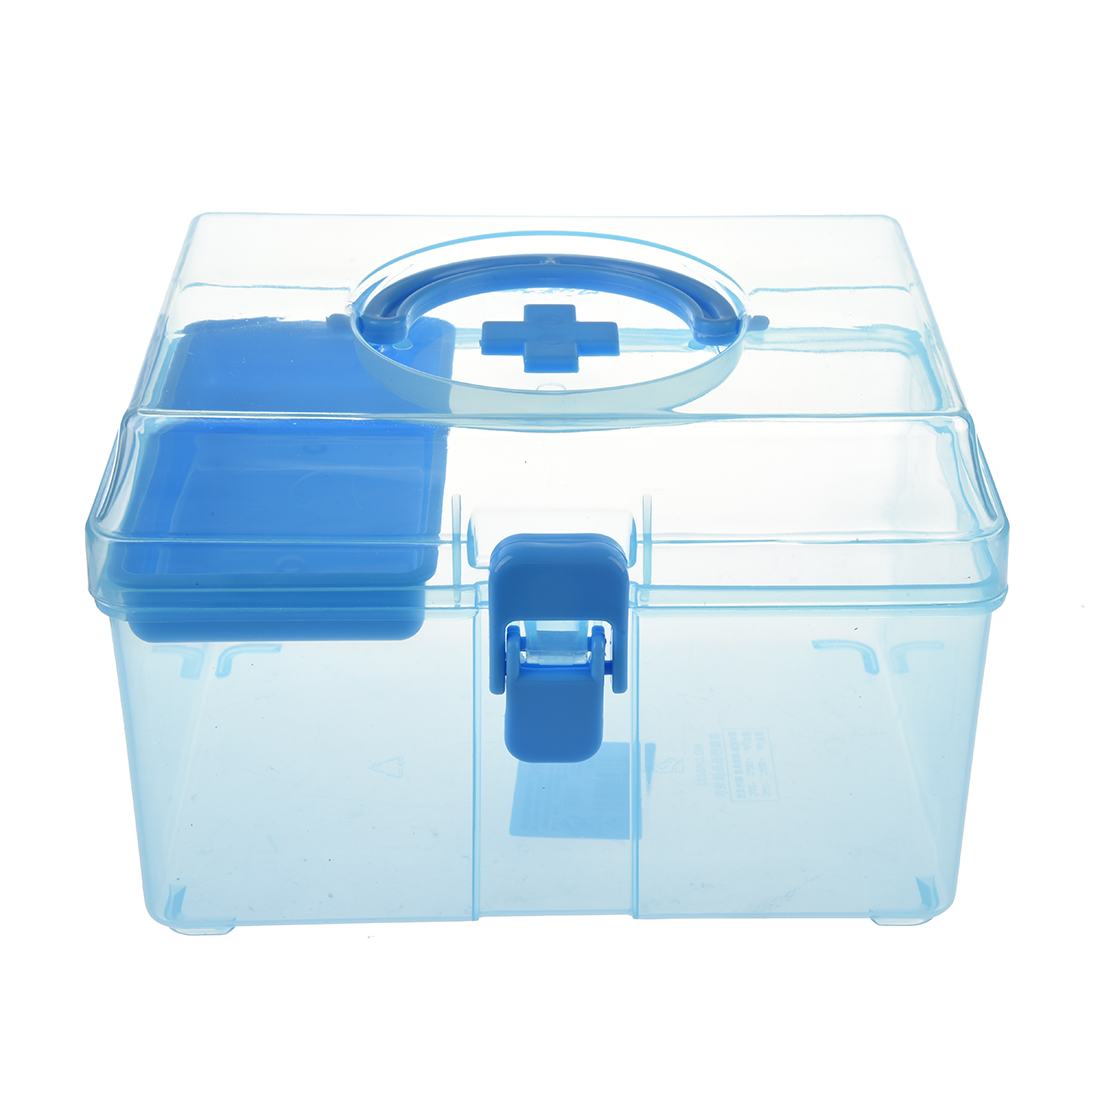 Family First Aid Box Emergency Kits Case Portable Medical Wound Treatment Pills Bandages Storage Box For Home Car Travel(China)